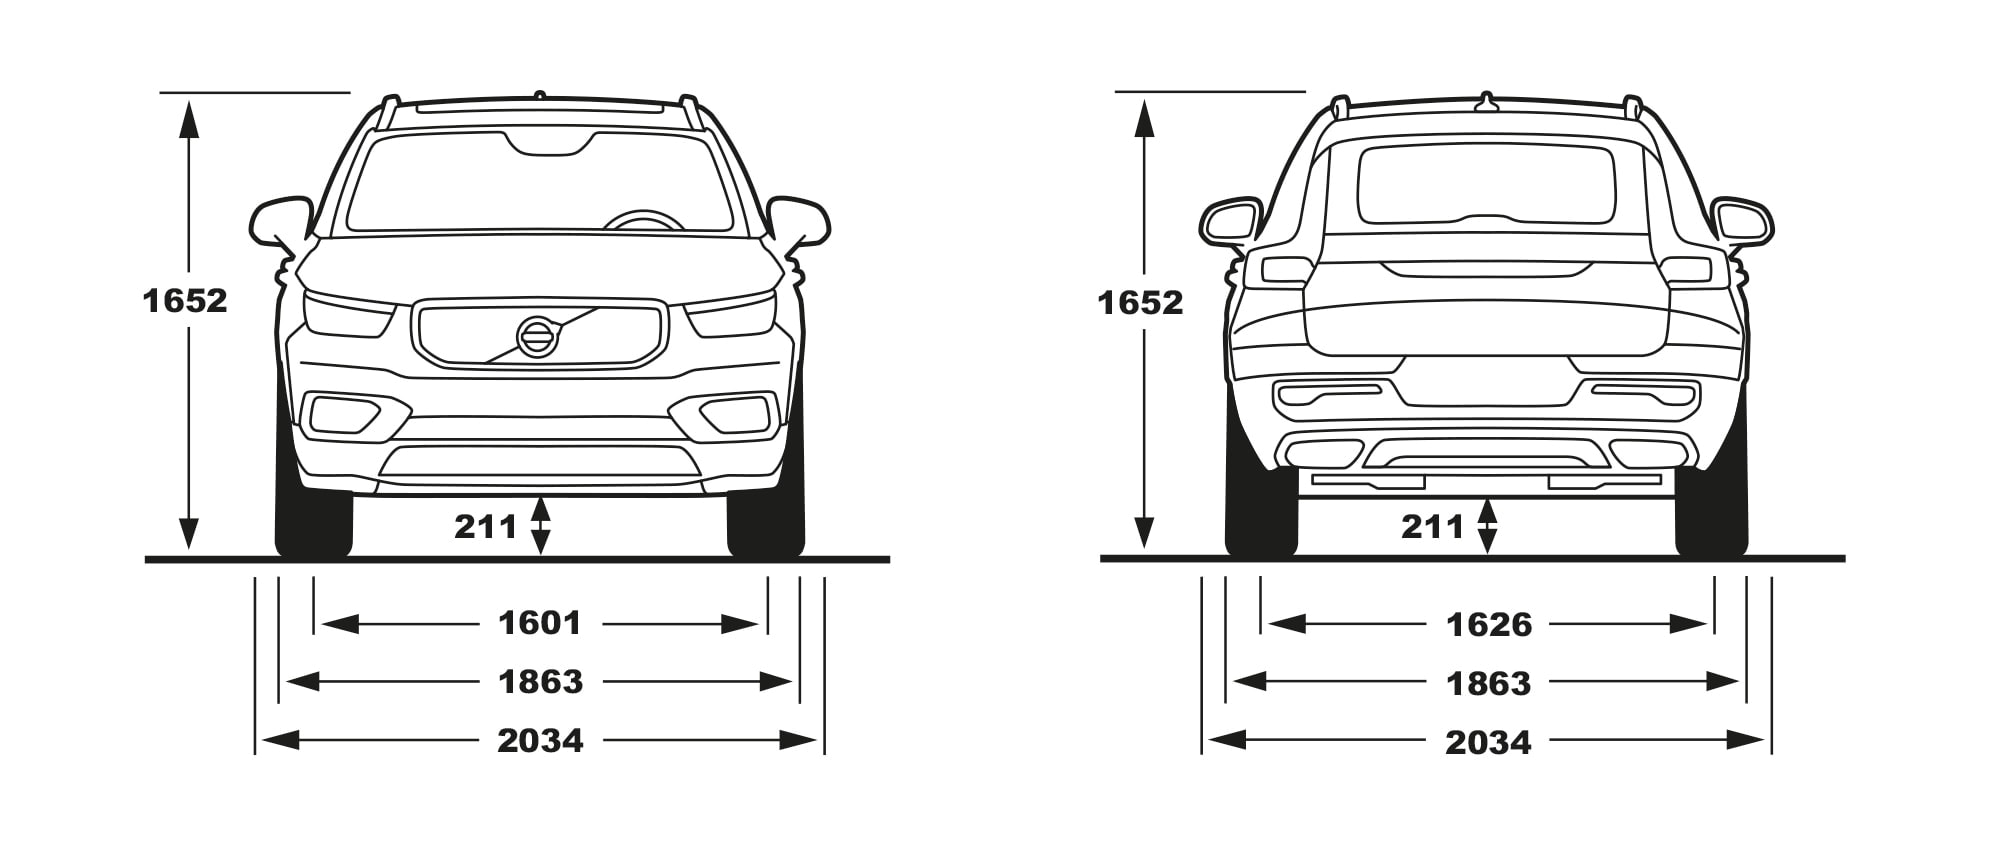 XC40 front and rear view of dimensions